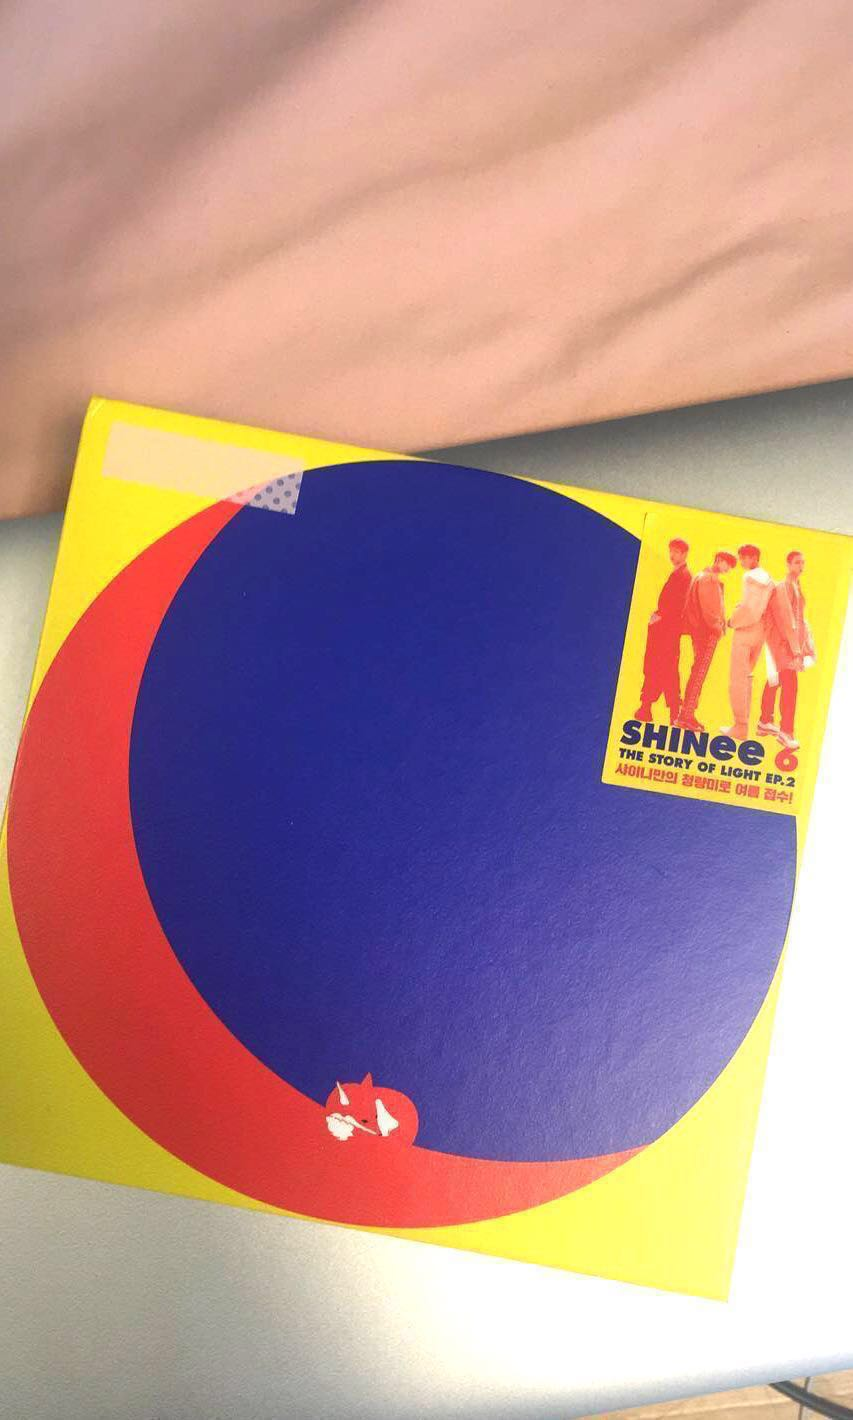 INSTOCKS SHINee Ep2: The Story of Light Album Photocard and Poster